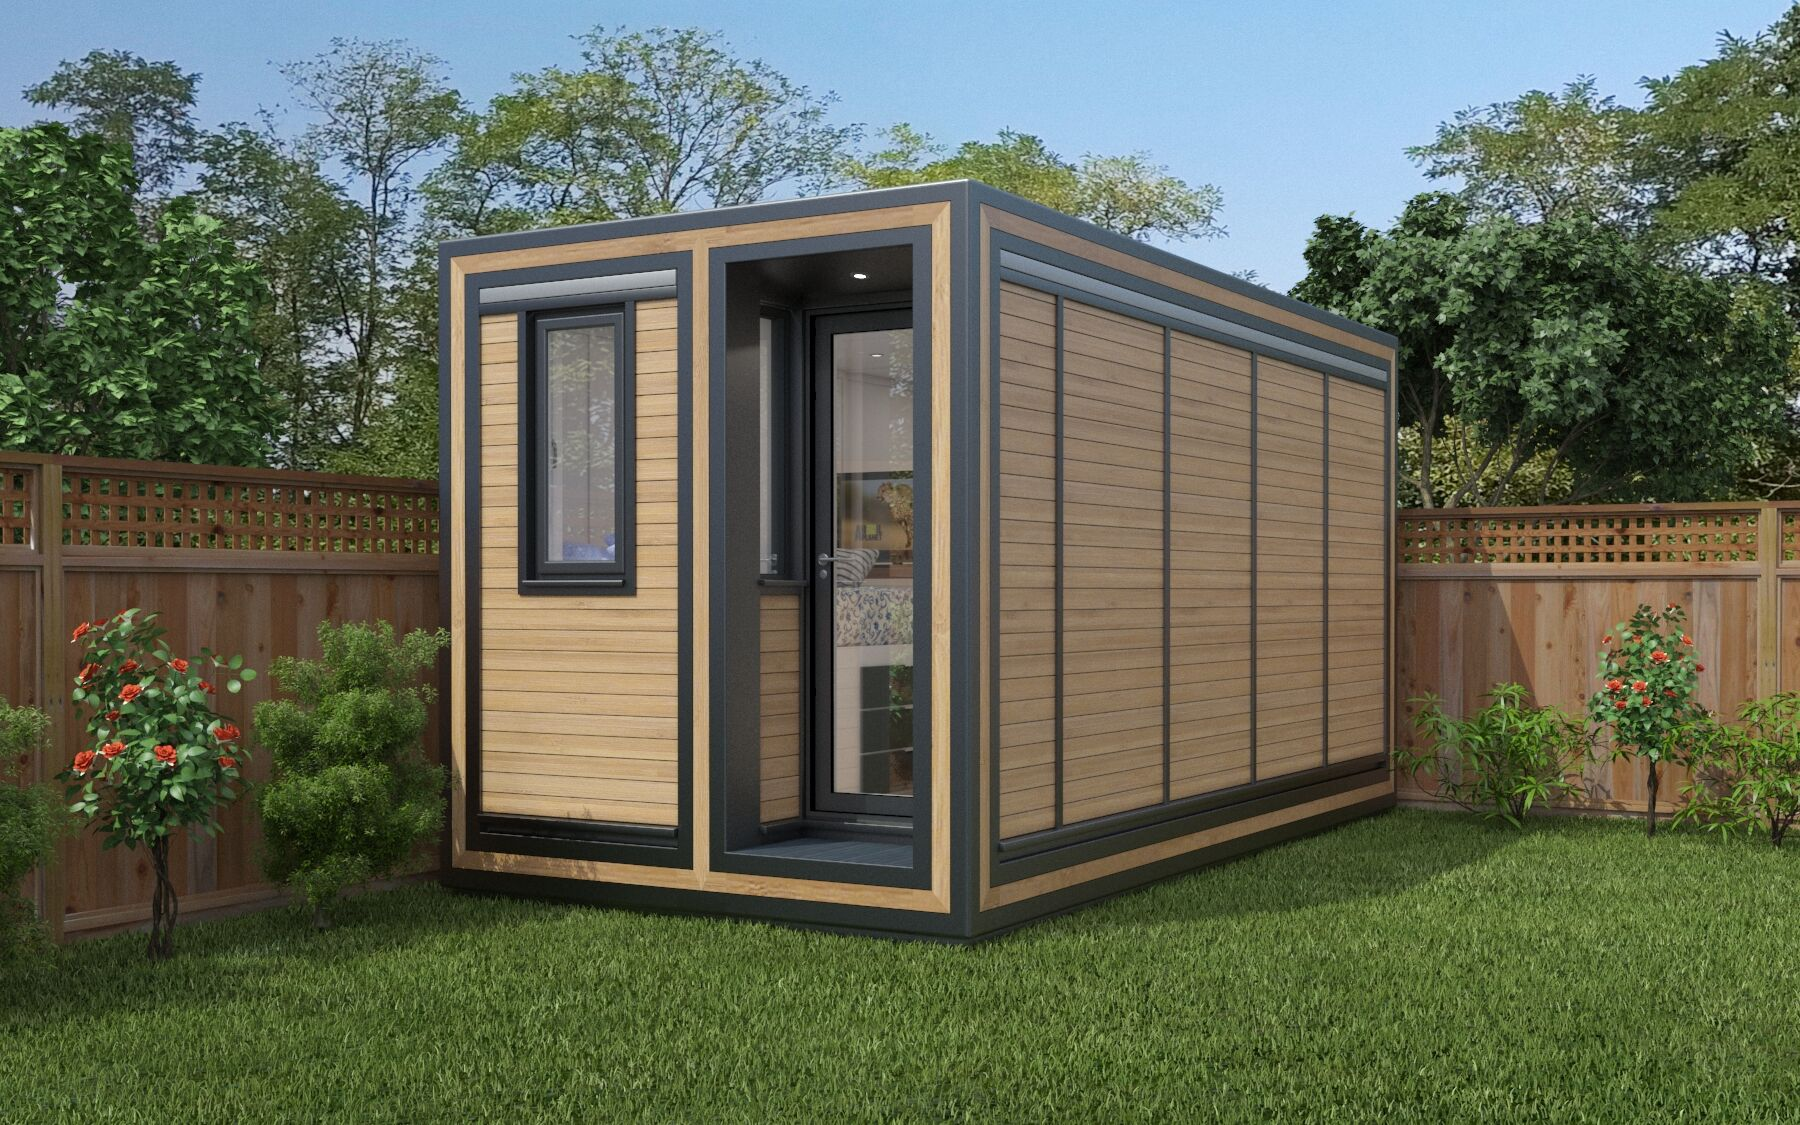 Garden pods perfect for narrow gardens, the 245 packs a lot of living space into a tiny footprint.